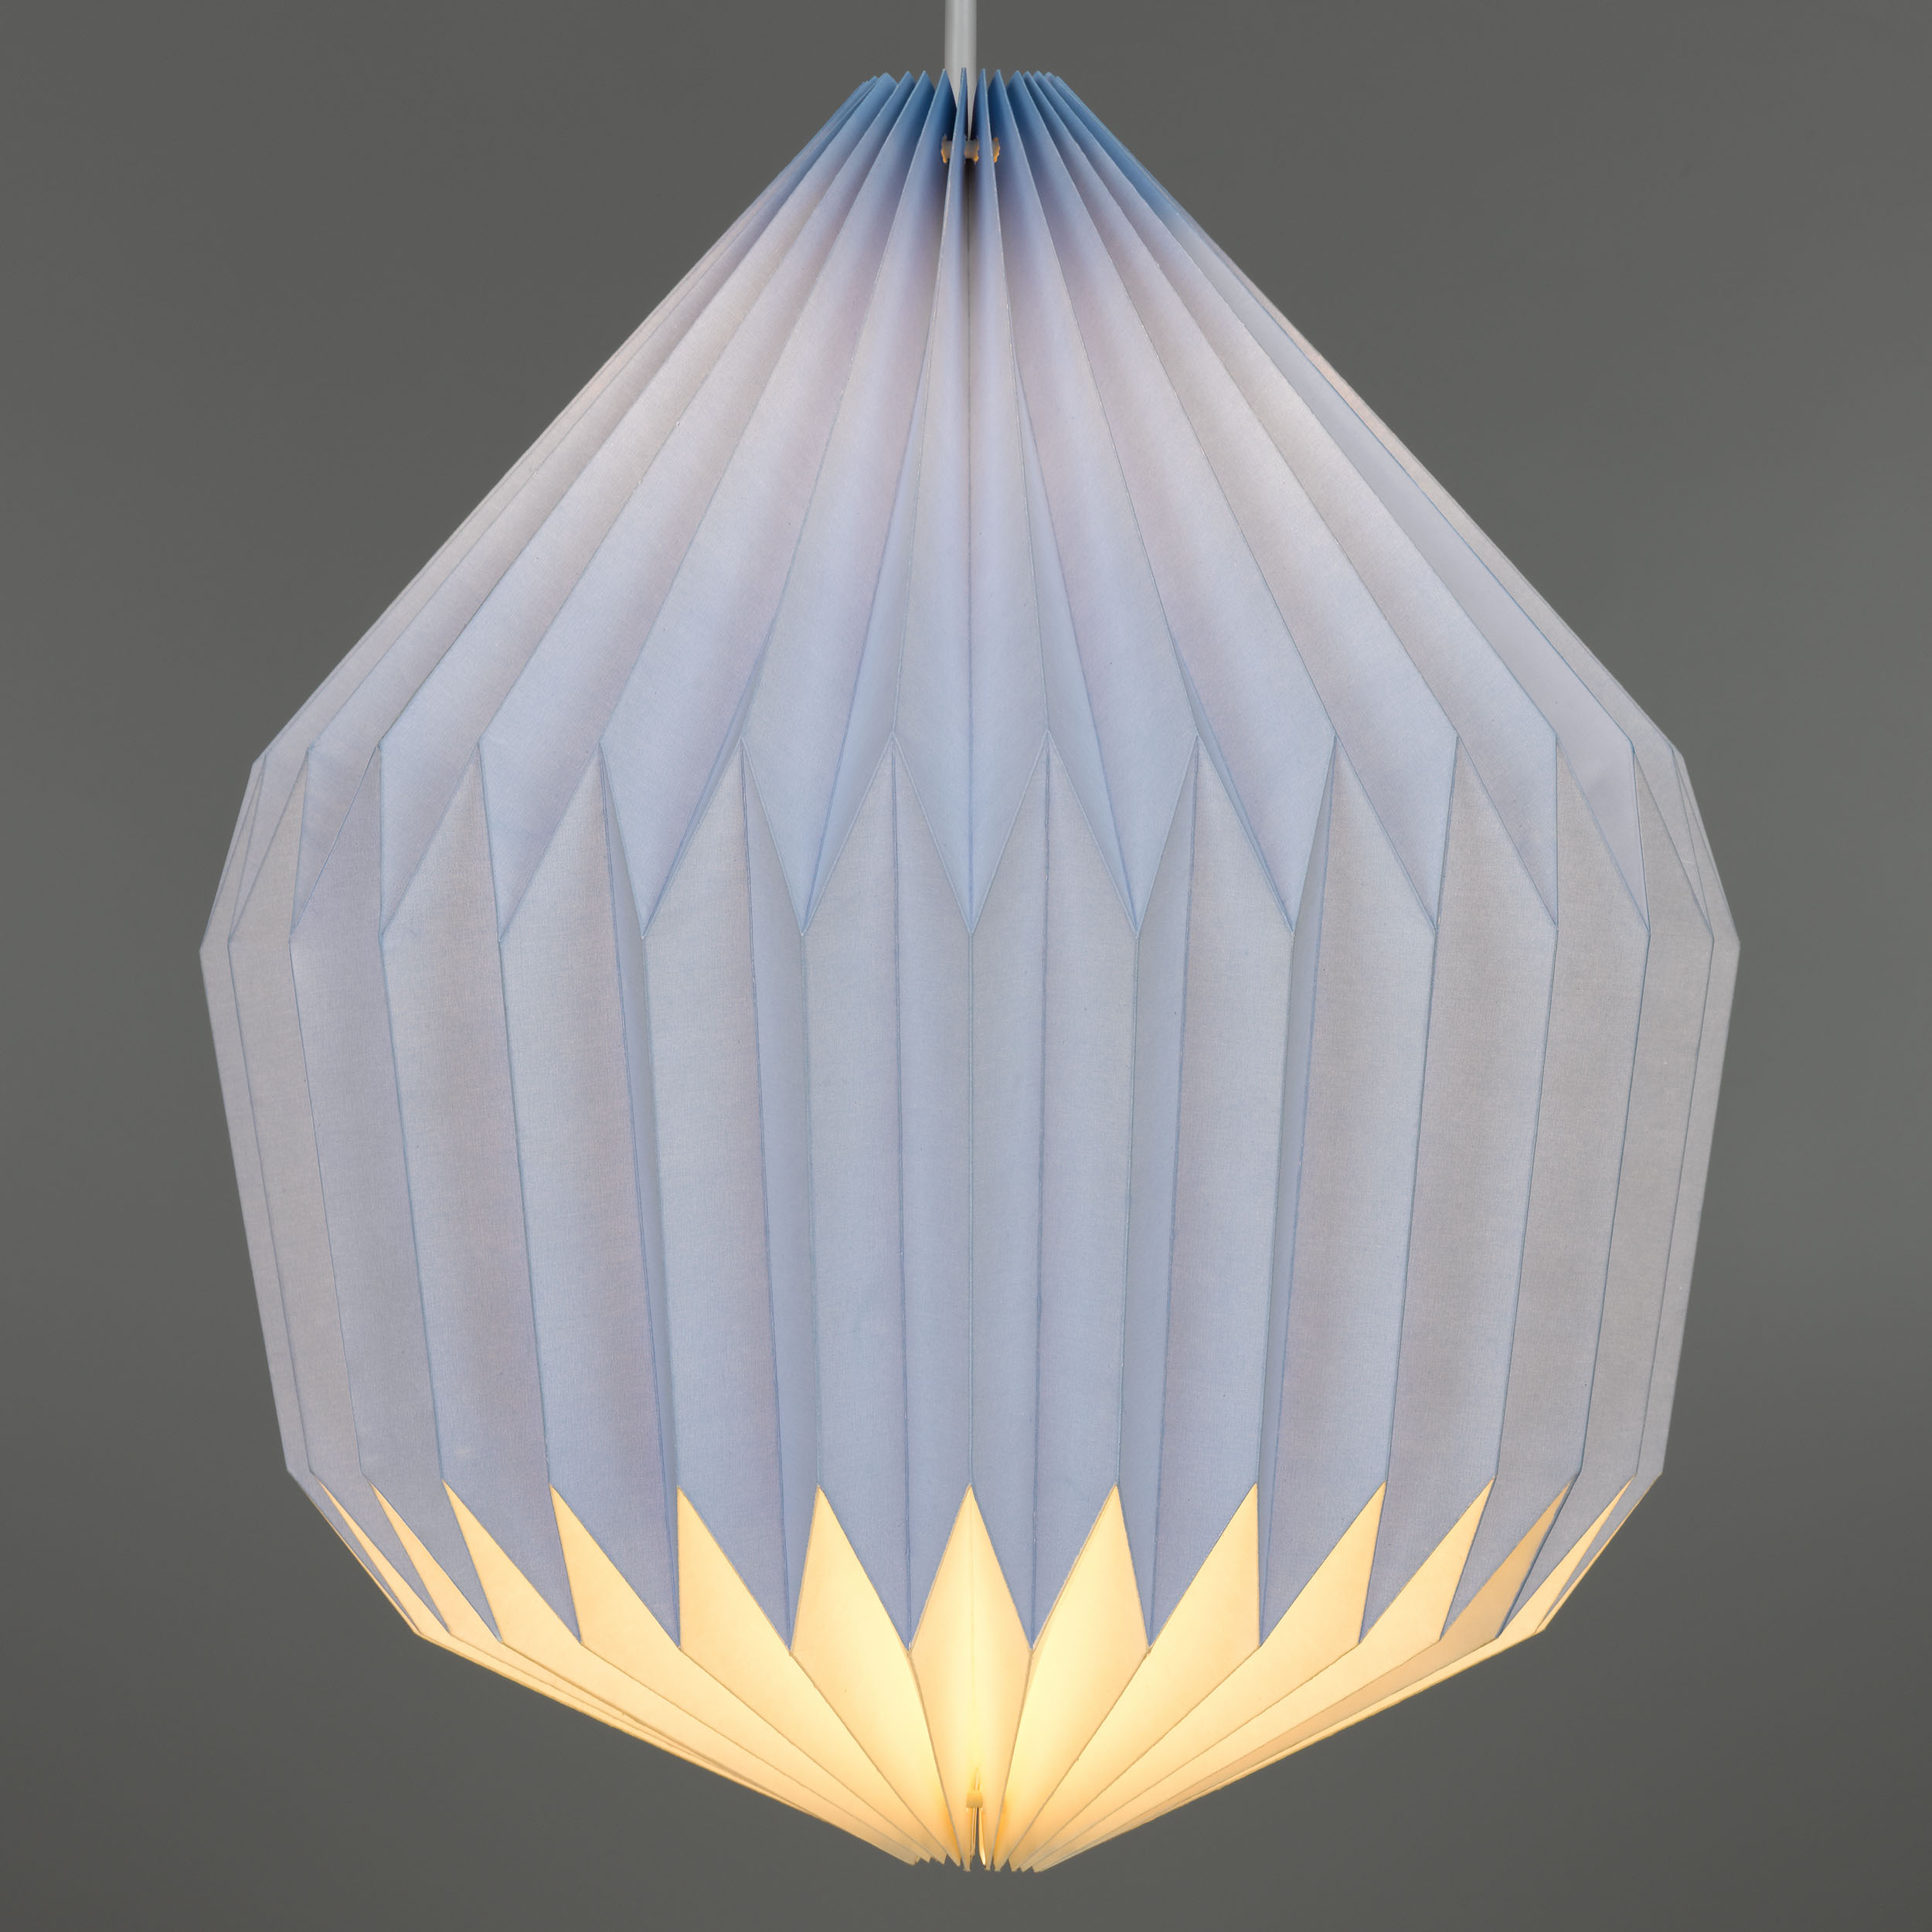 Cornflower Blue Paper Lampshade